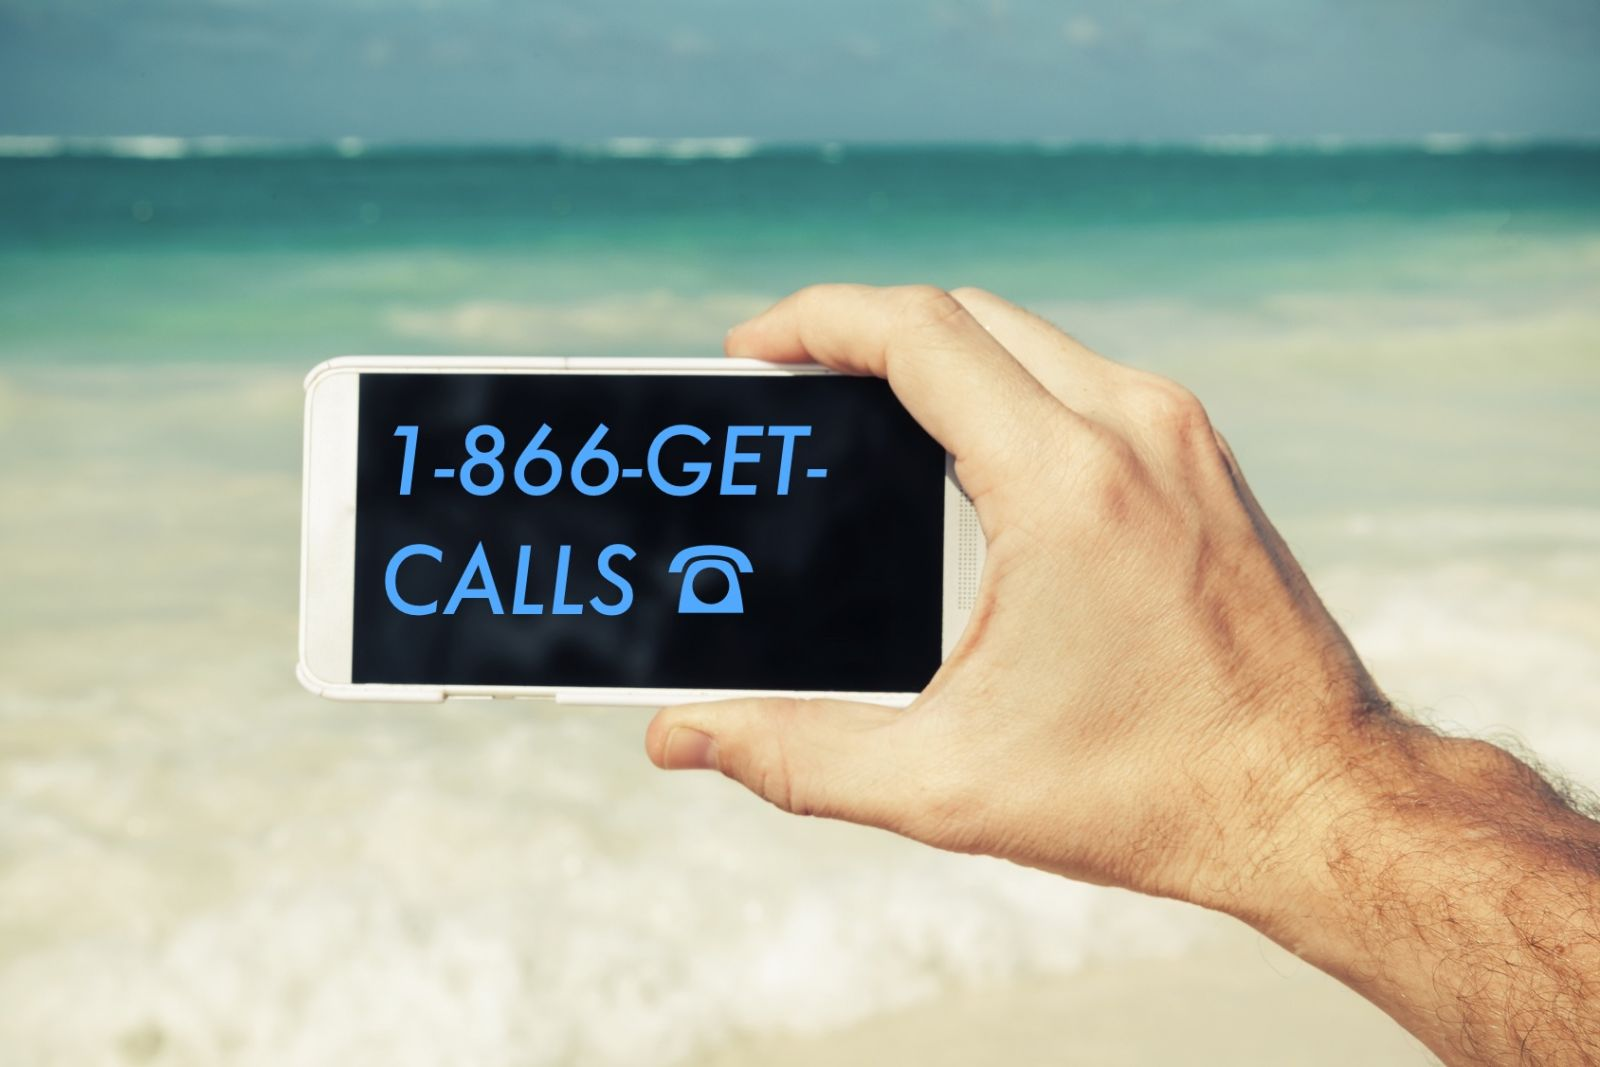 Small Business, Phone Calls, Summer 2015, Toll Free Benefits